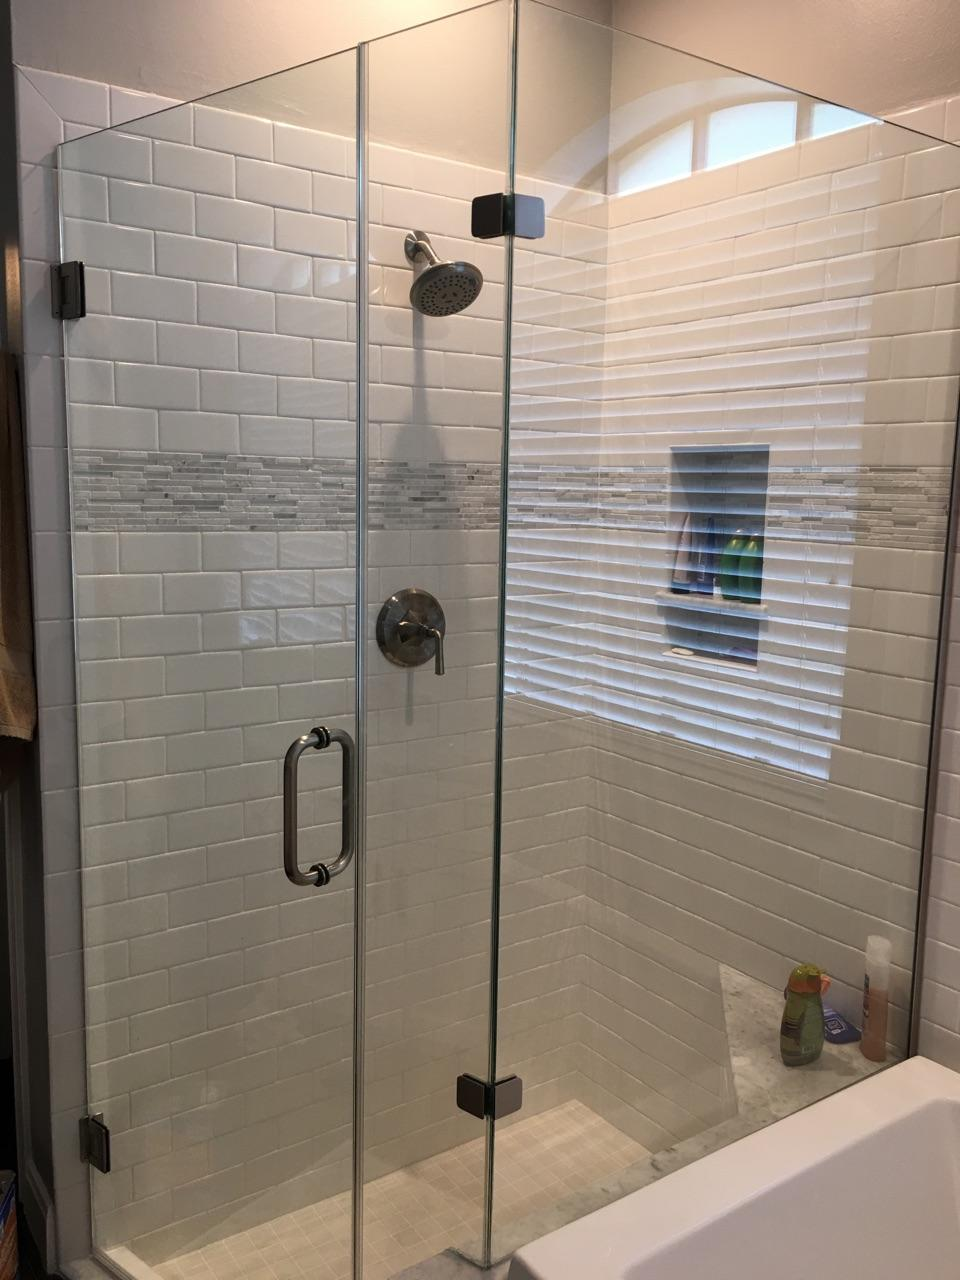 Frame-less glass shower  (Above pictured)  Custom vanities, tile flooring, drop-in tub, and paint